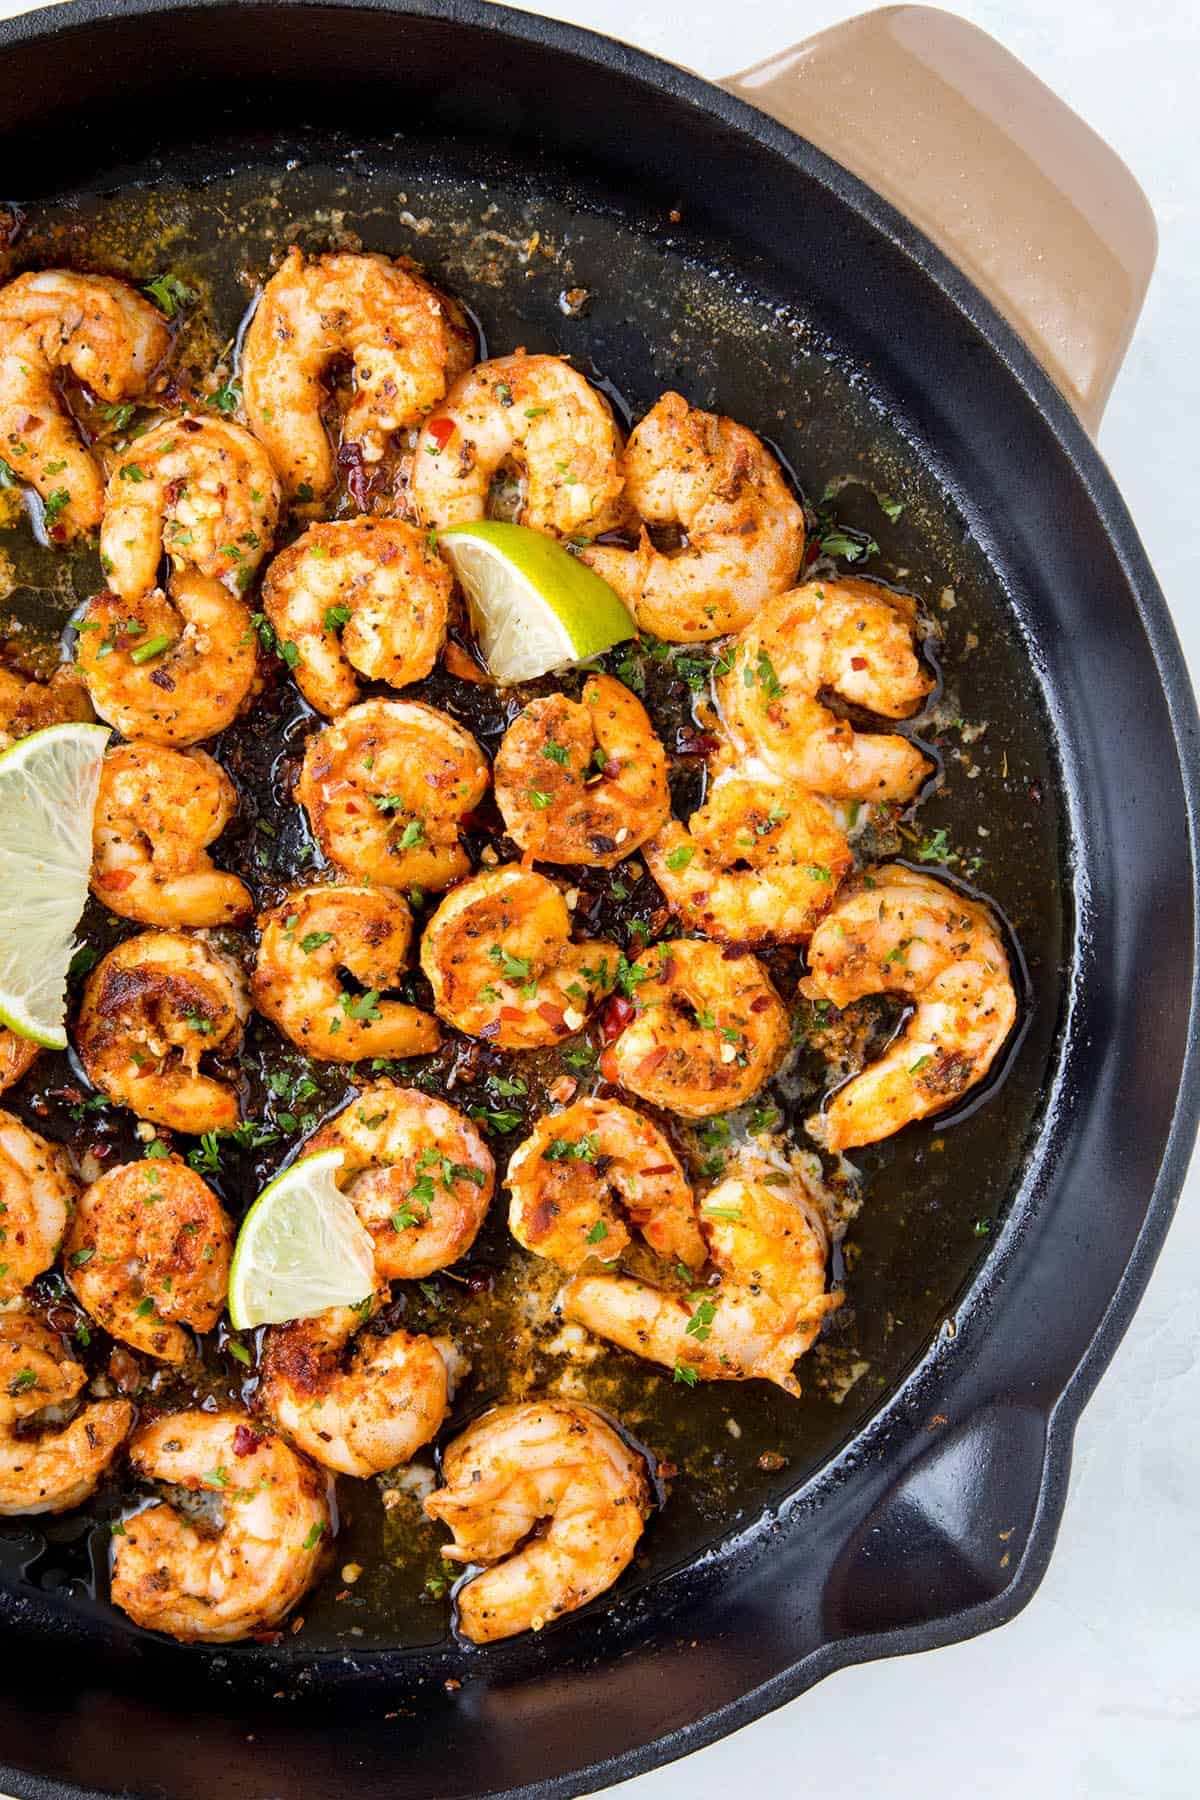 Blackened Shrimp in a pan, ready to eat